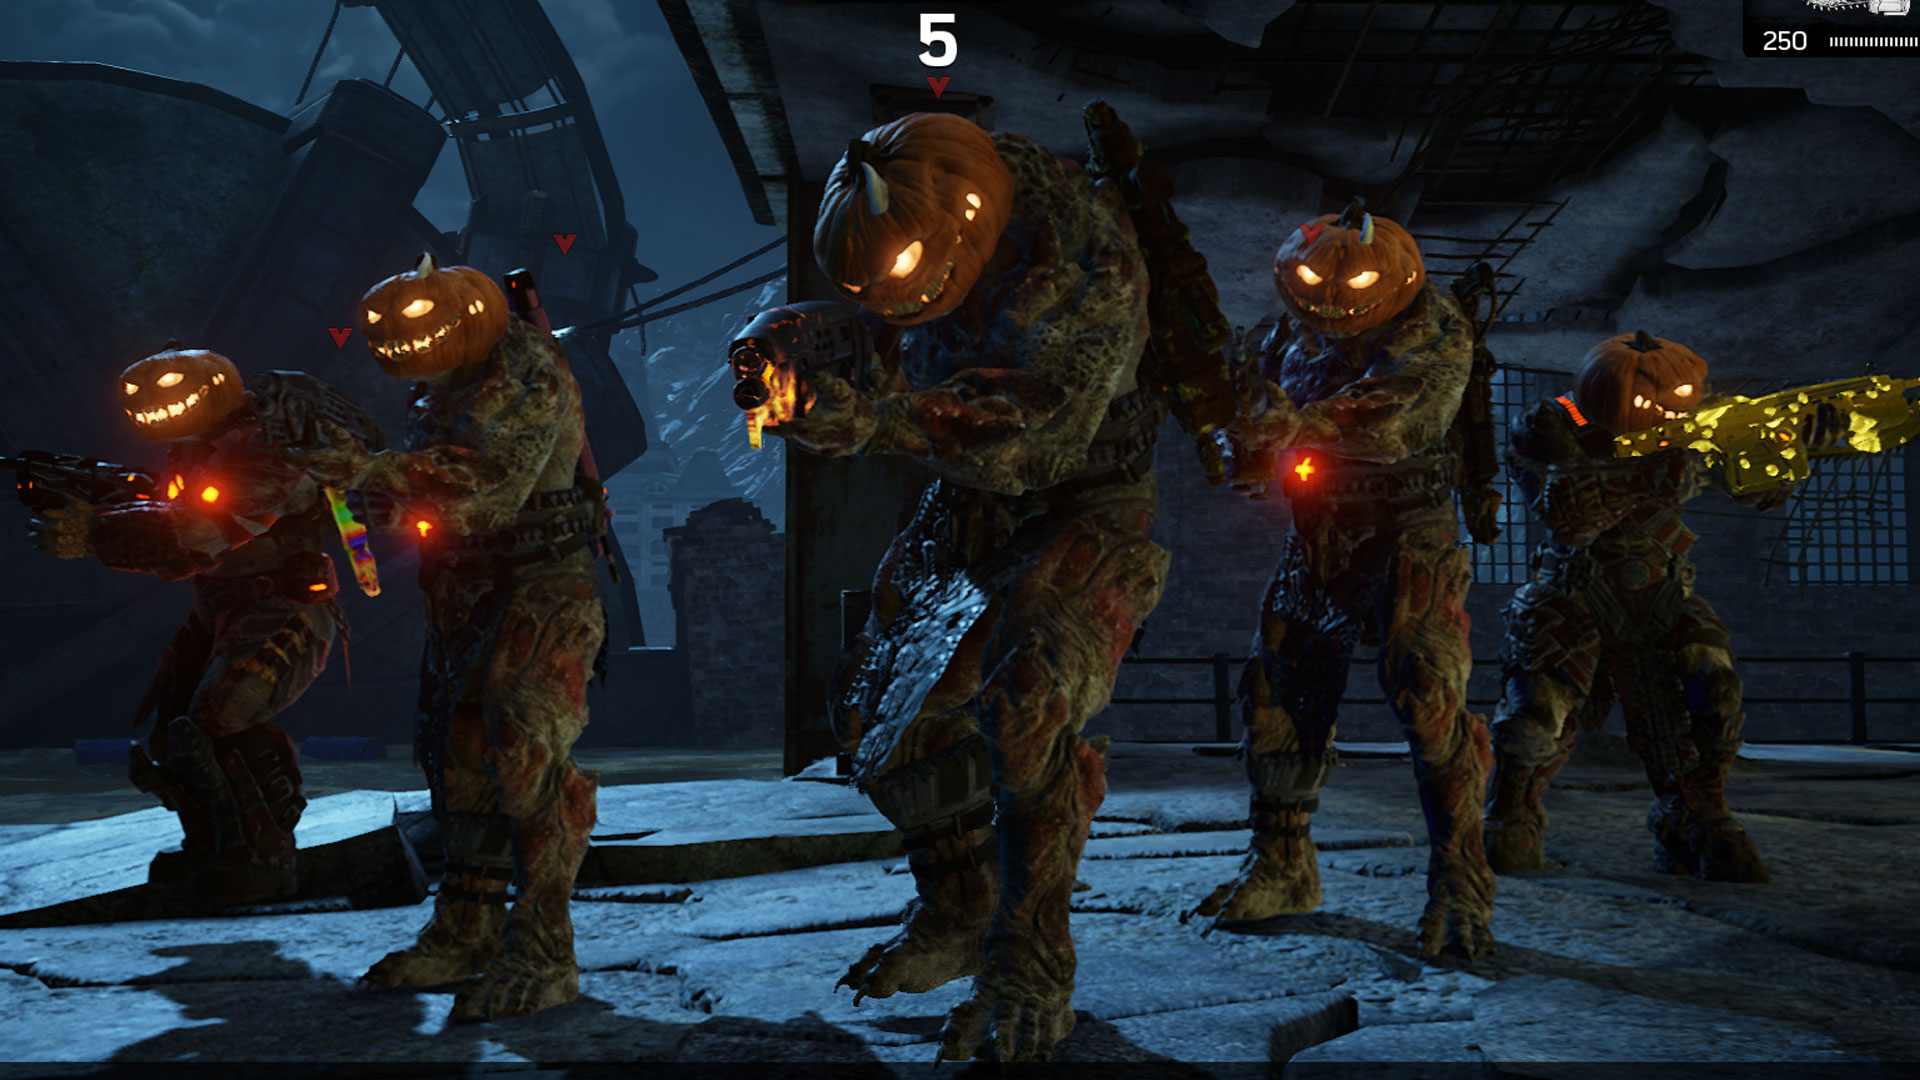 Gow4 Halloween Event 2020 Gears of War 4 Holiday Events   Gamerheadquarters